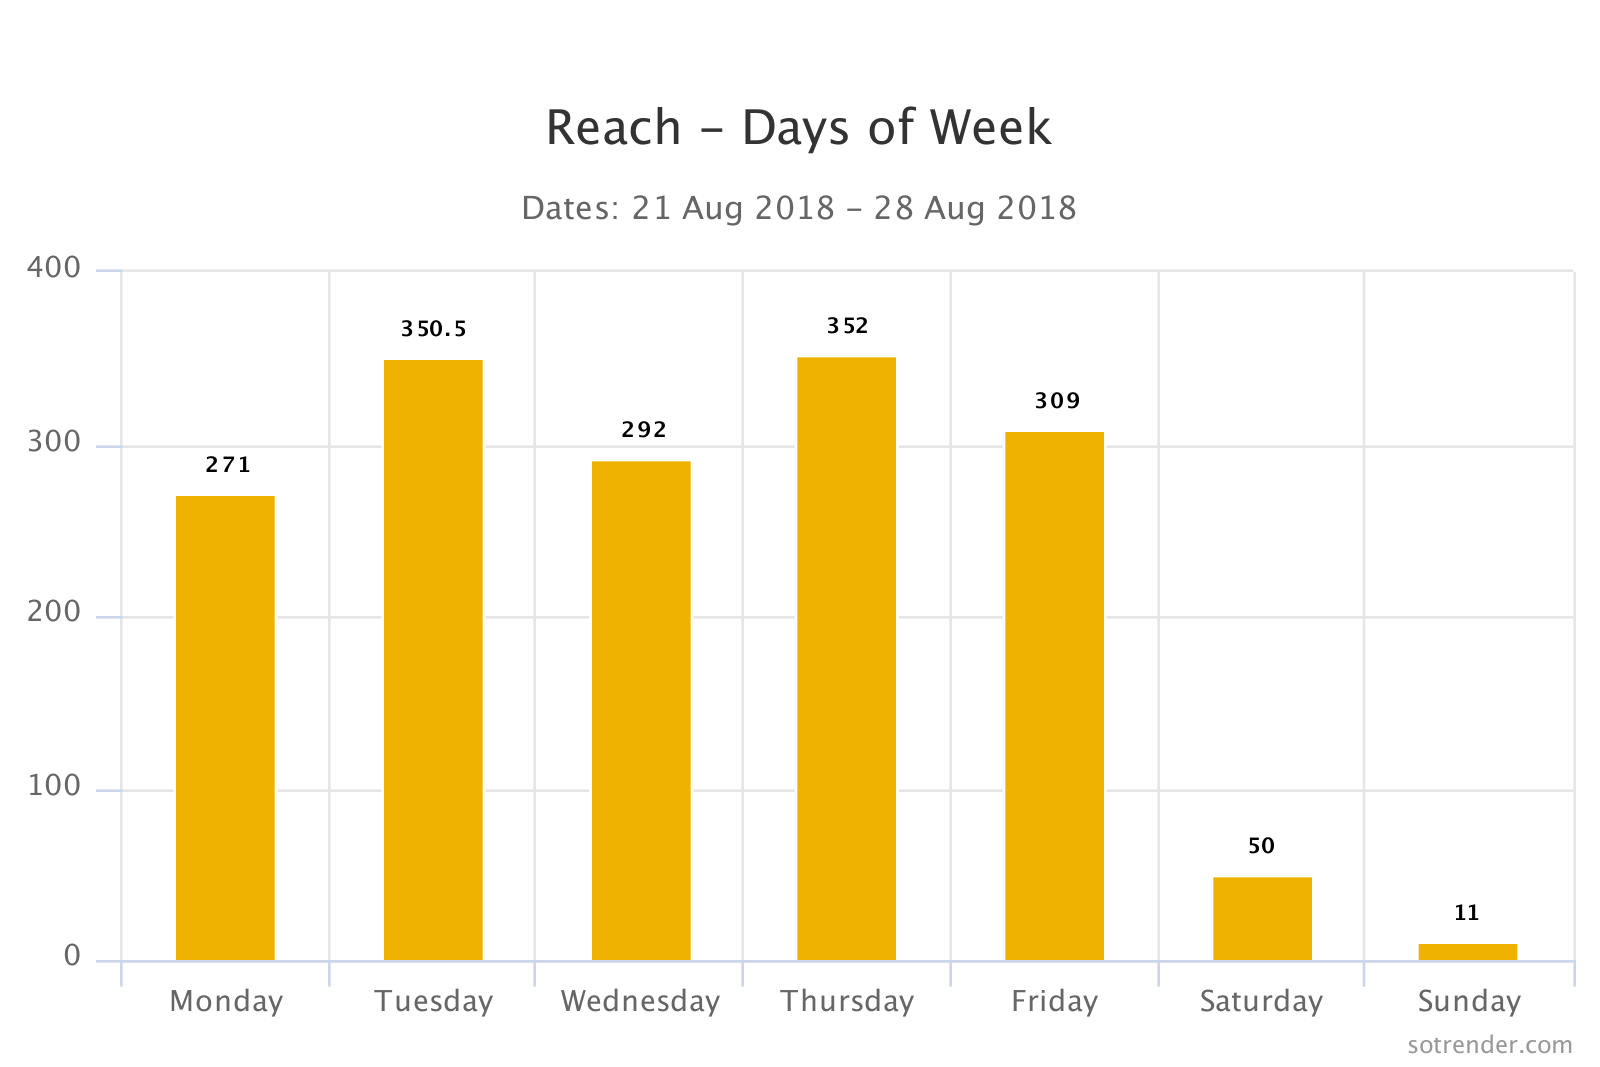 Reach - days of week